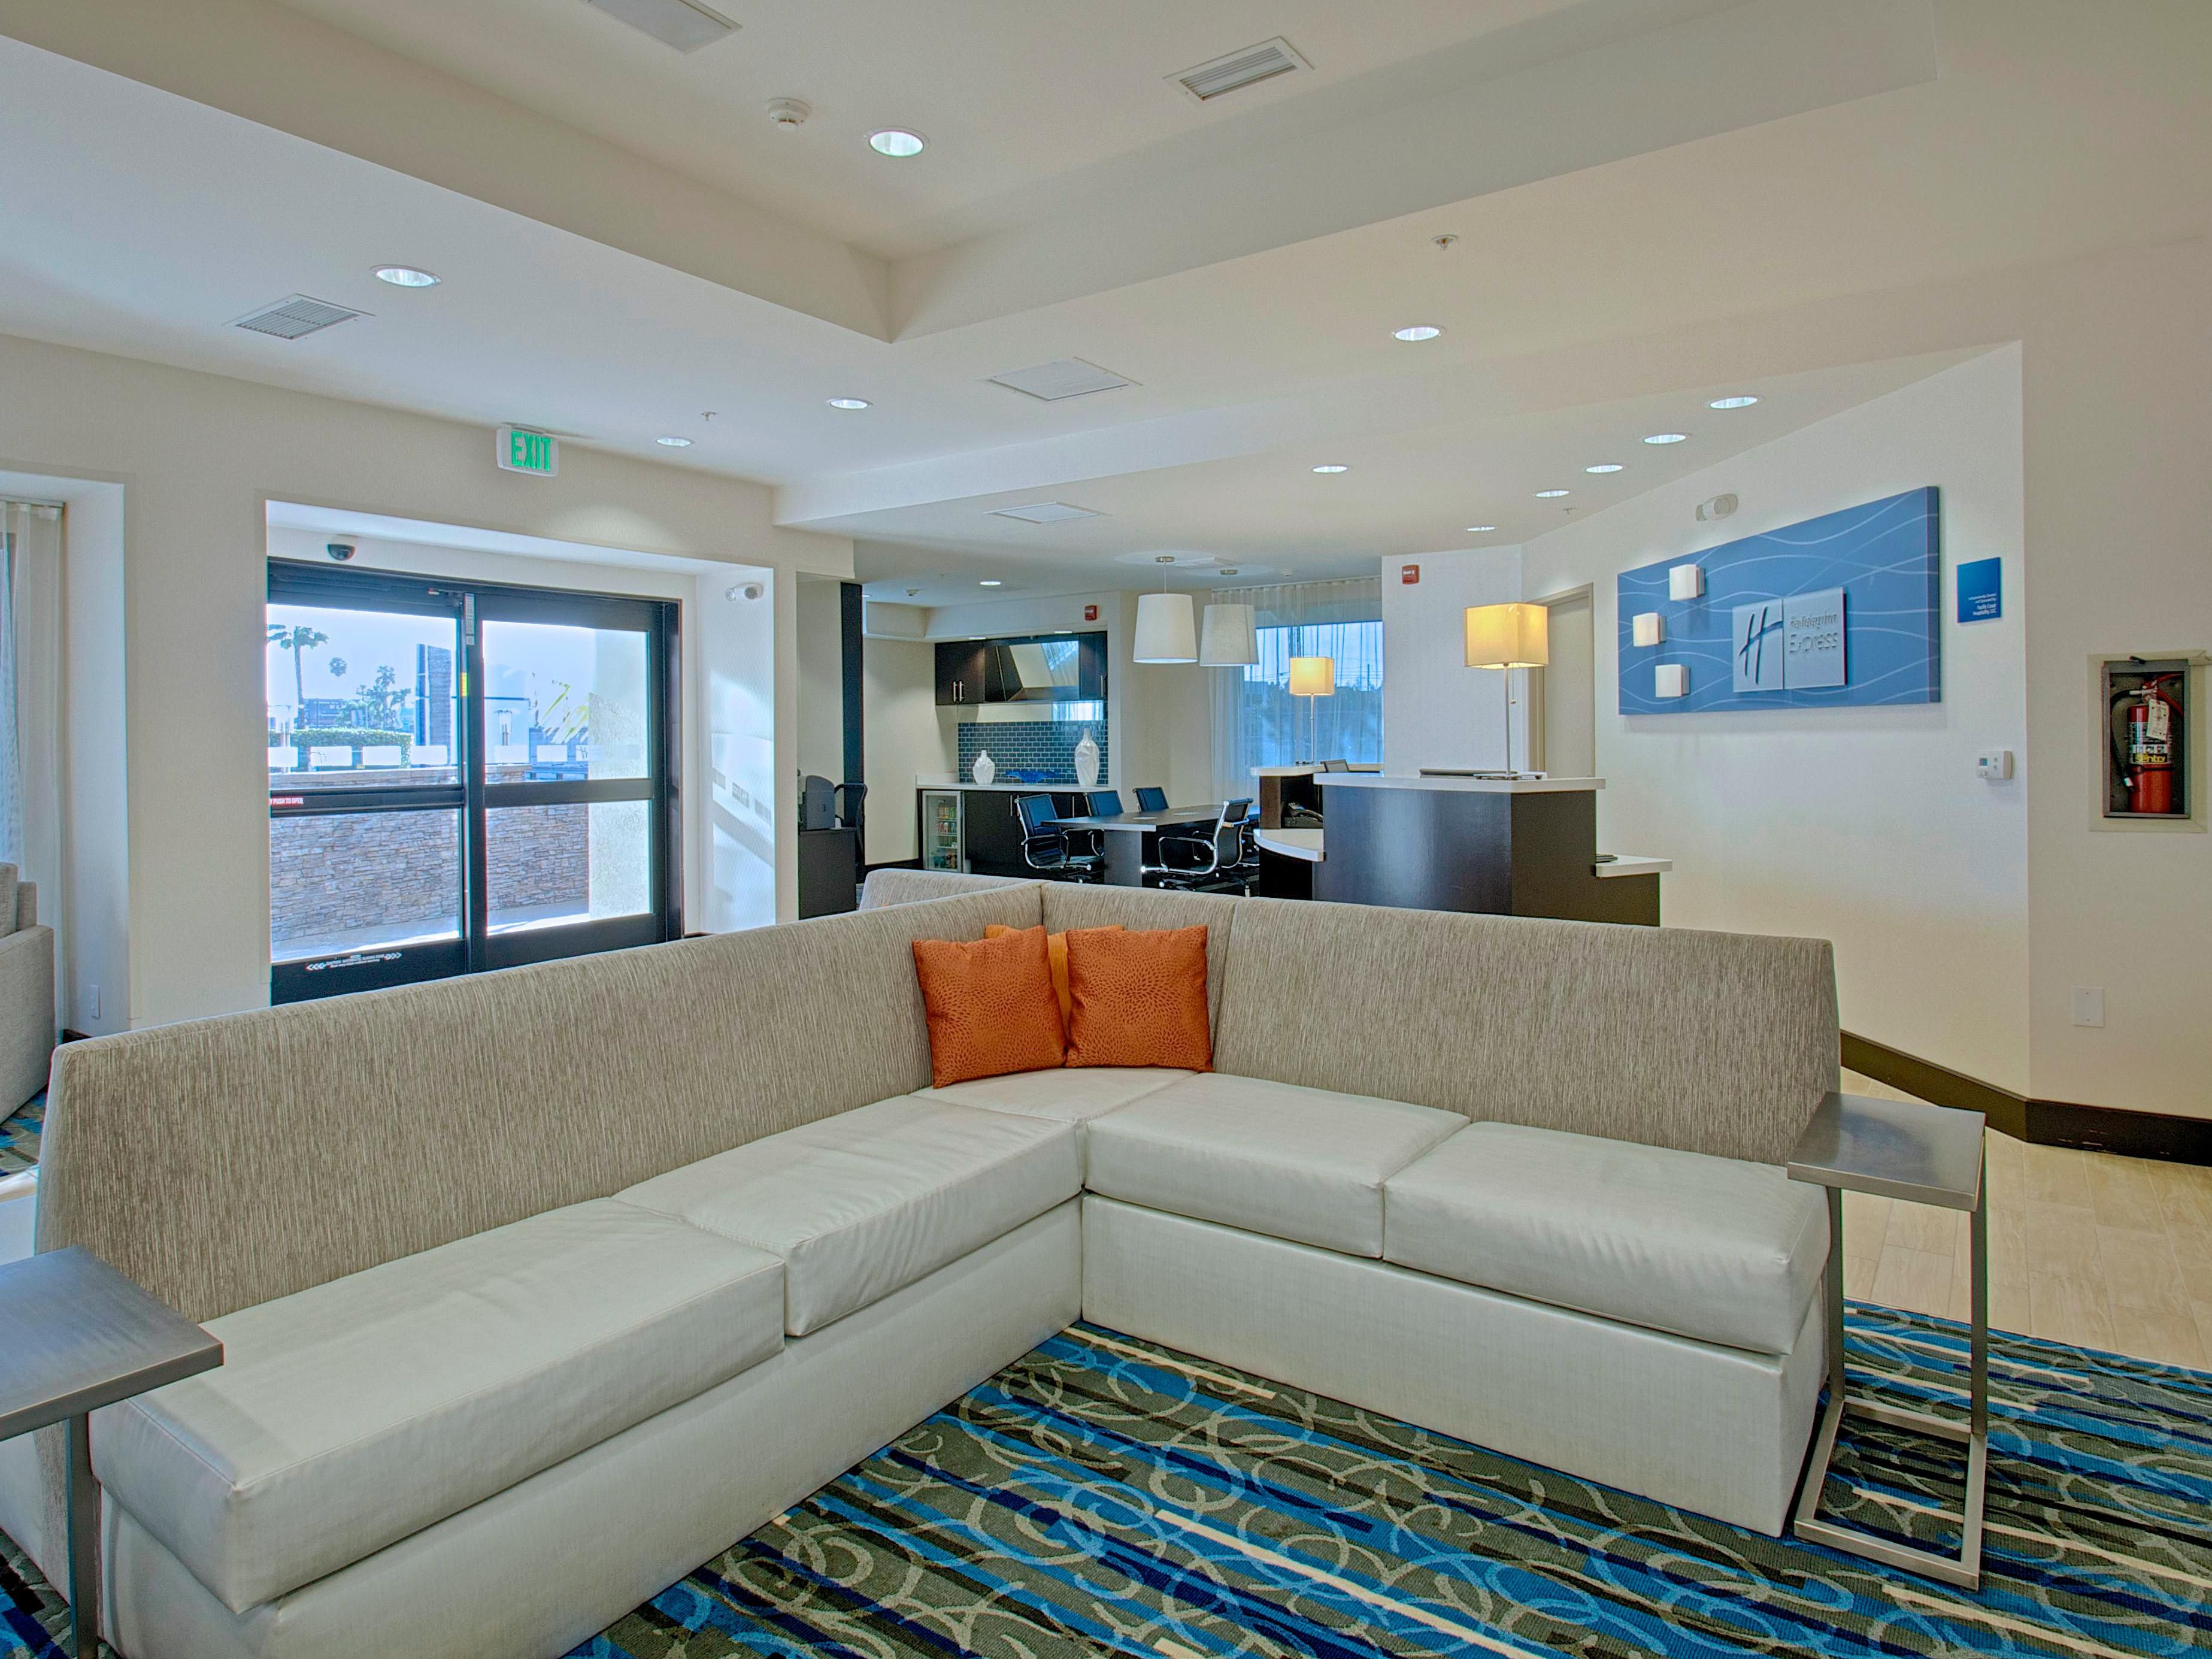 Sit back and relax in the newly remodeled lobby